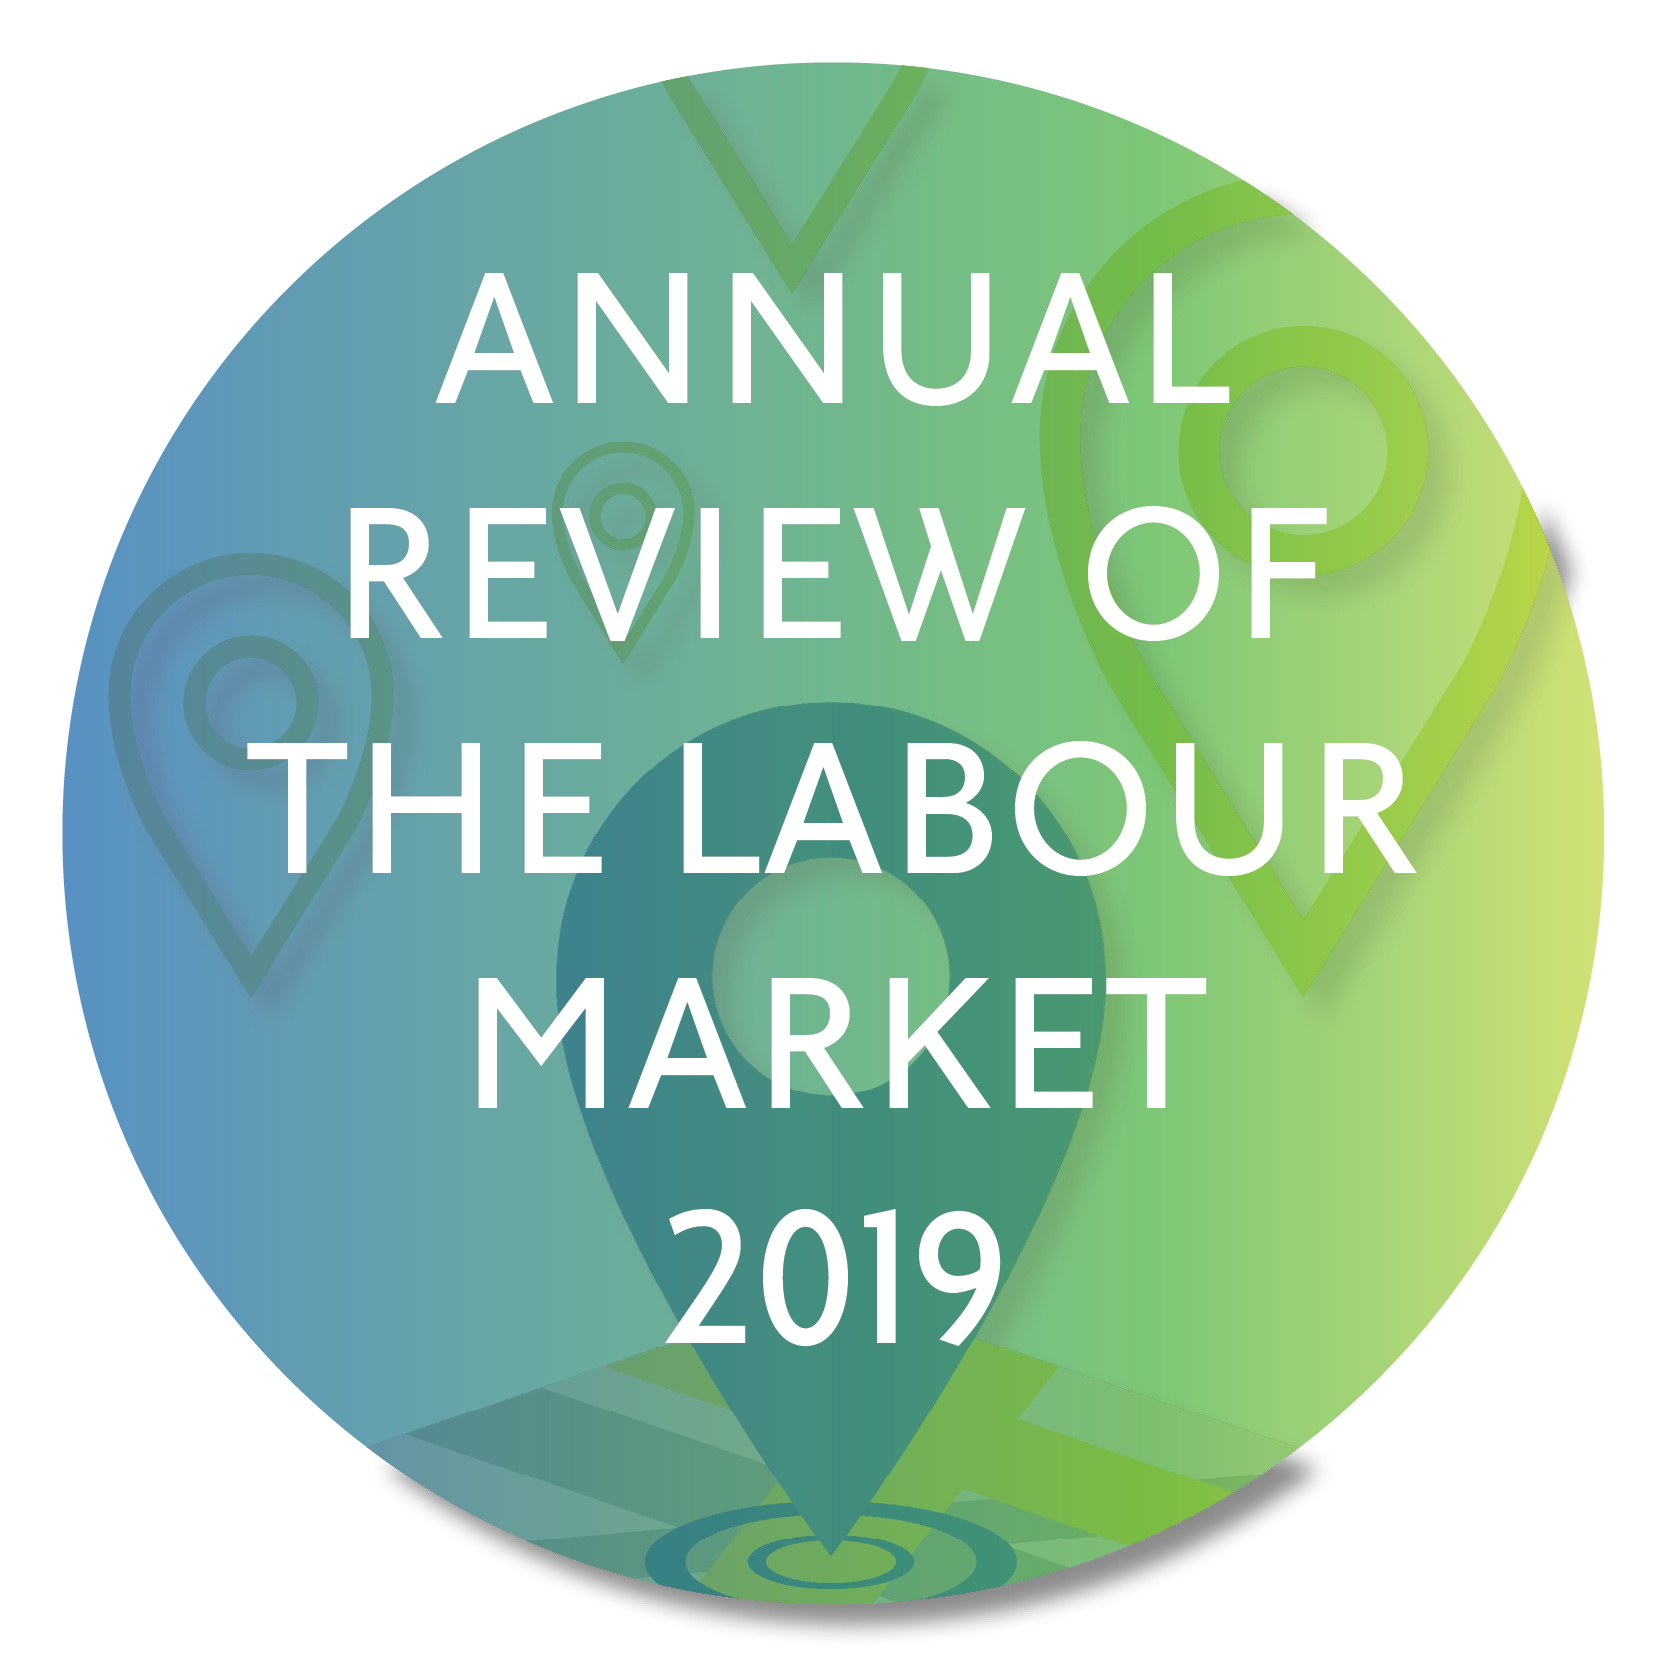 Annual Review of the Labour Market